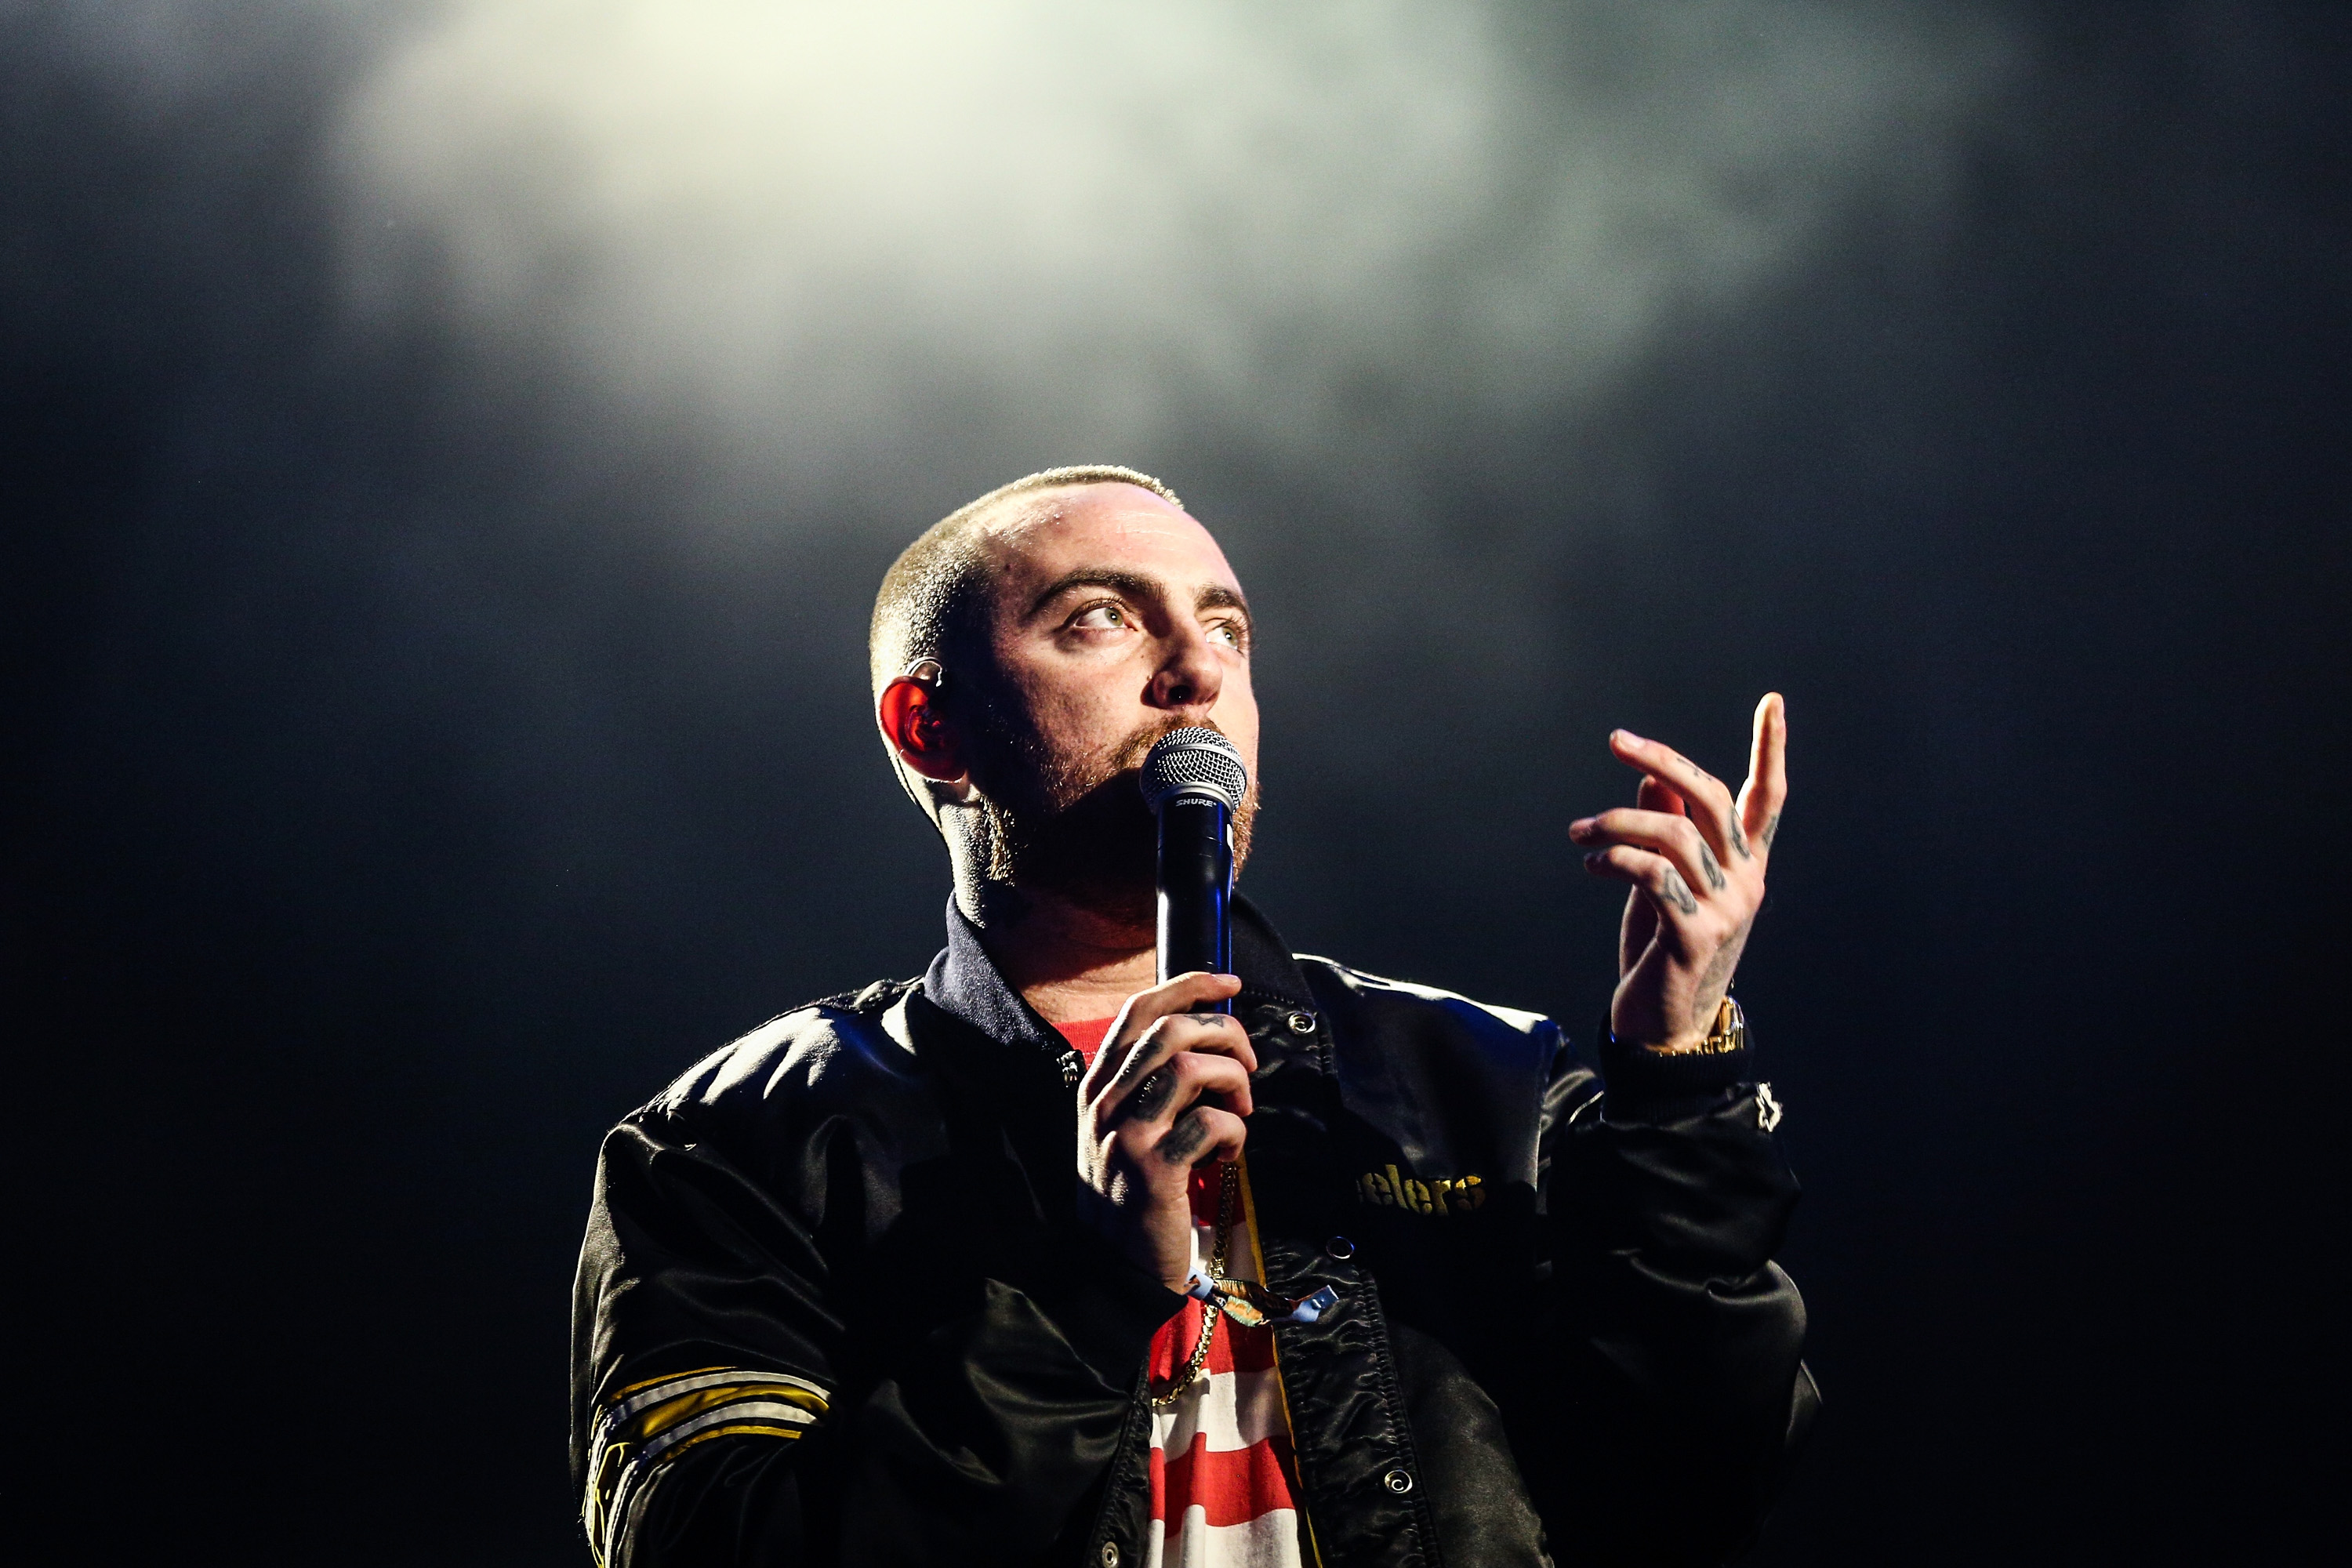 Los Angeles Man Charged With Selling Counterfeit Opioids That Killed Mac Miller